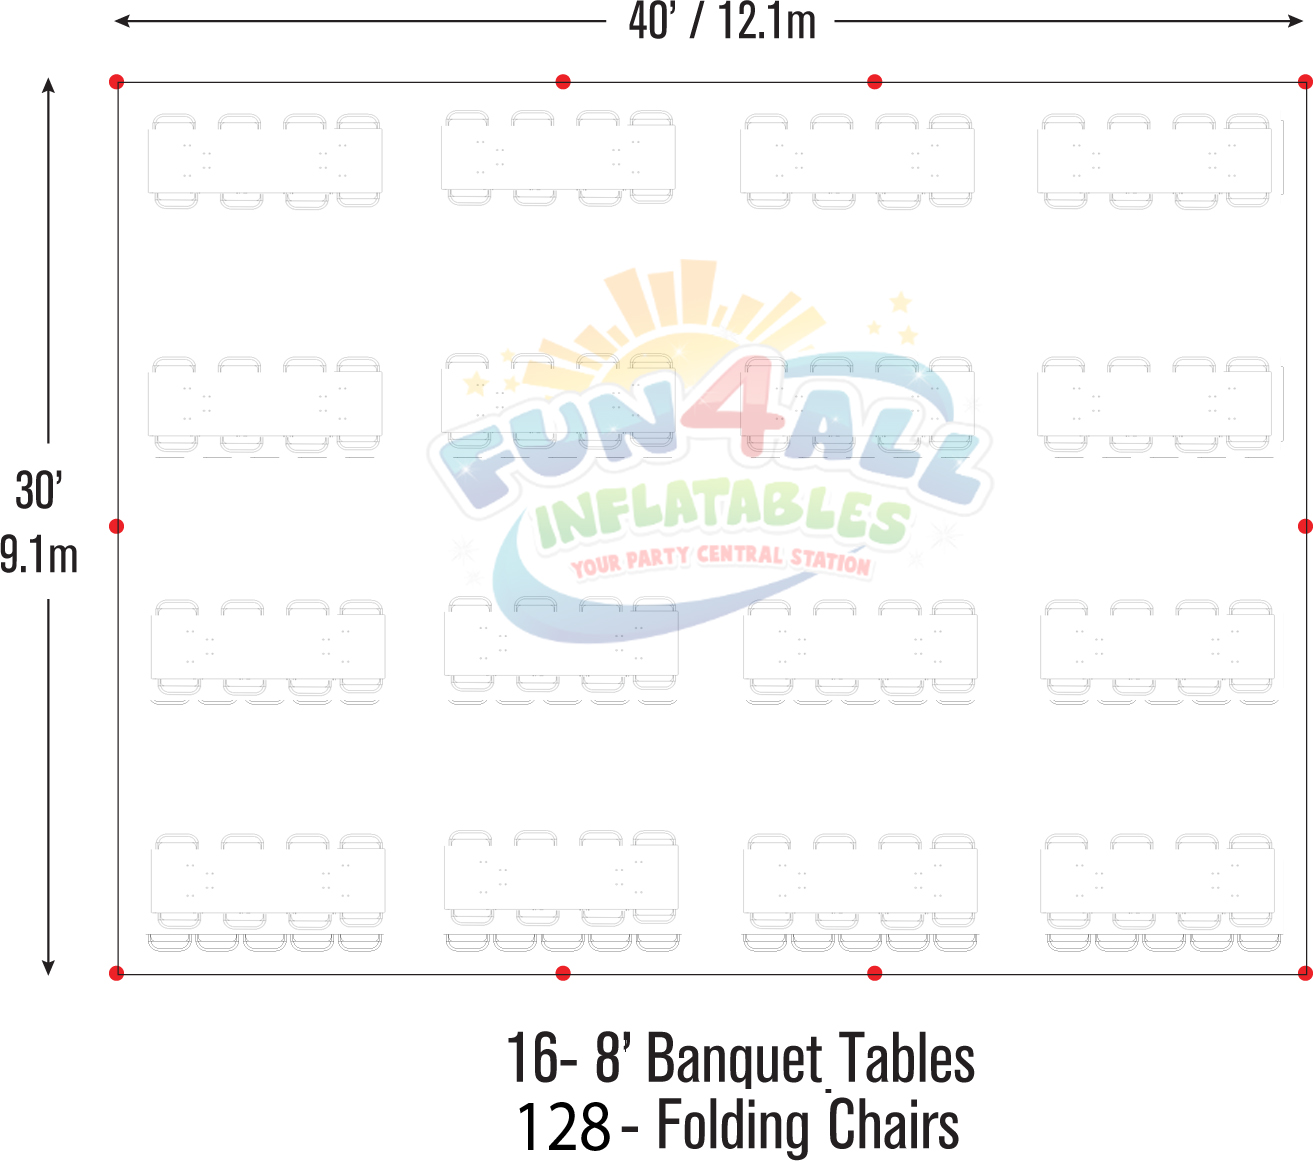 30x40 frame tent seating layout